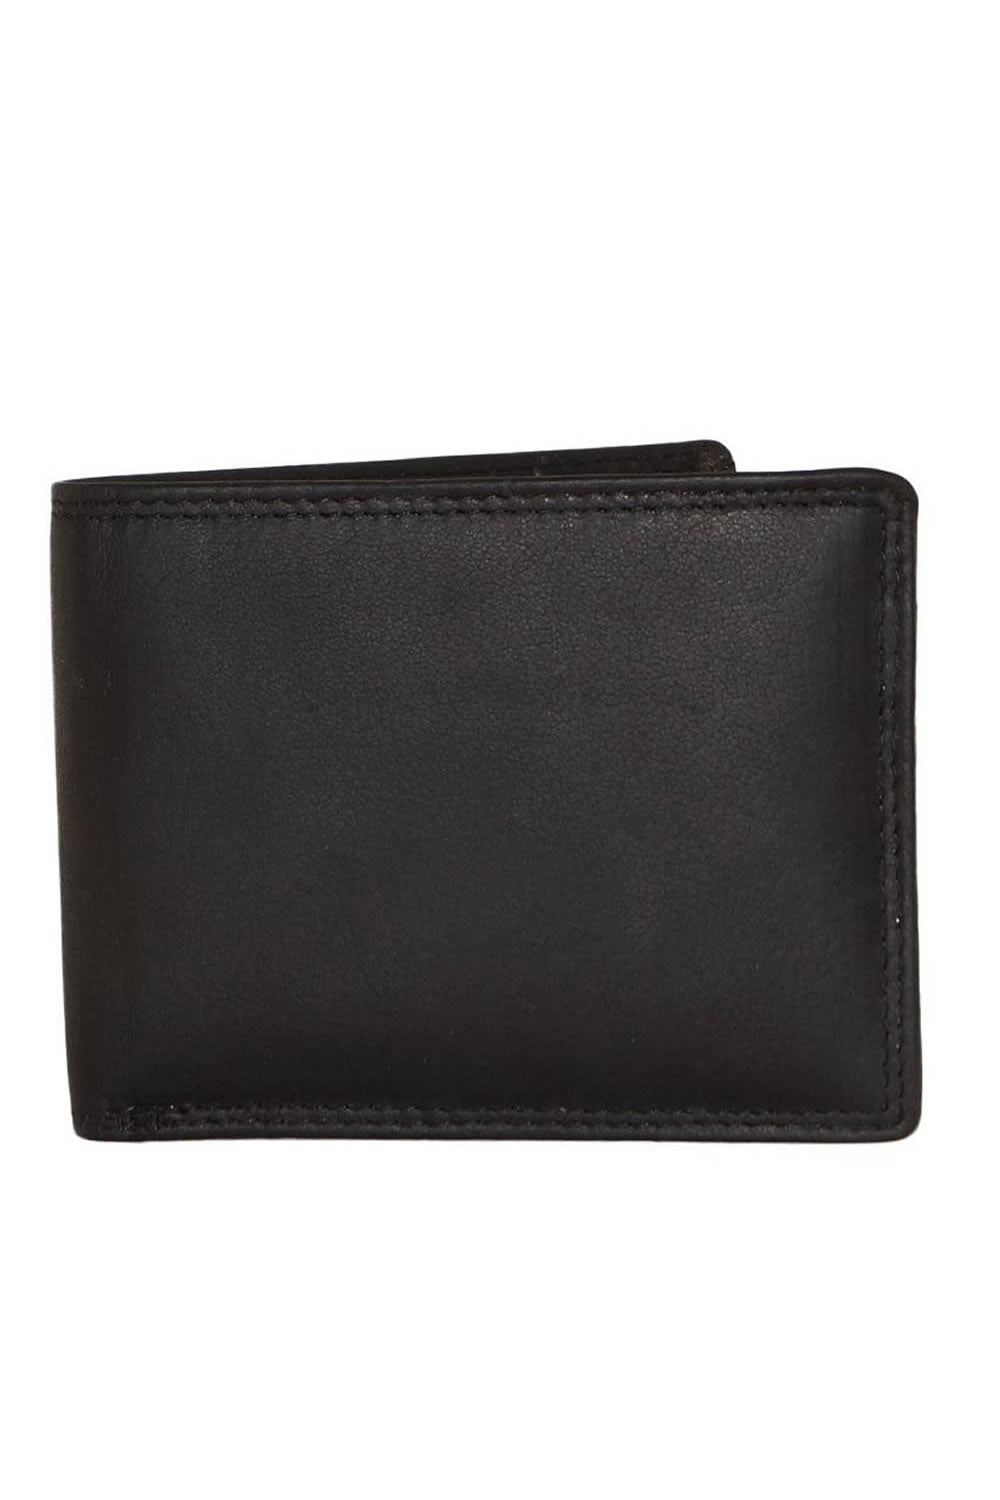 Cenzoni RFID Oil Pull Up Leather Wallet